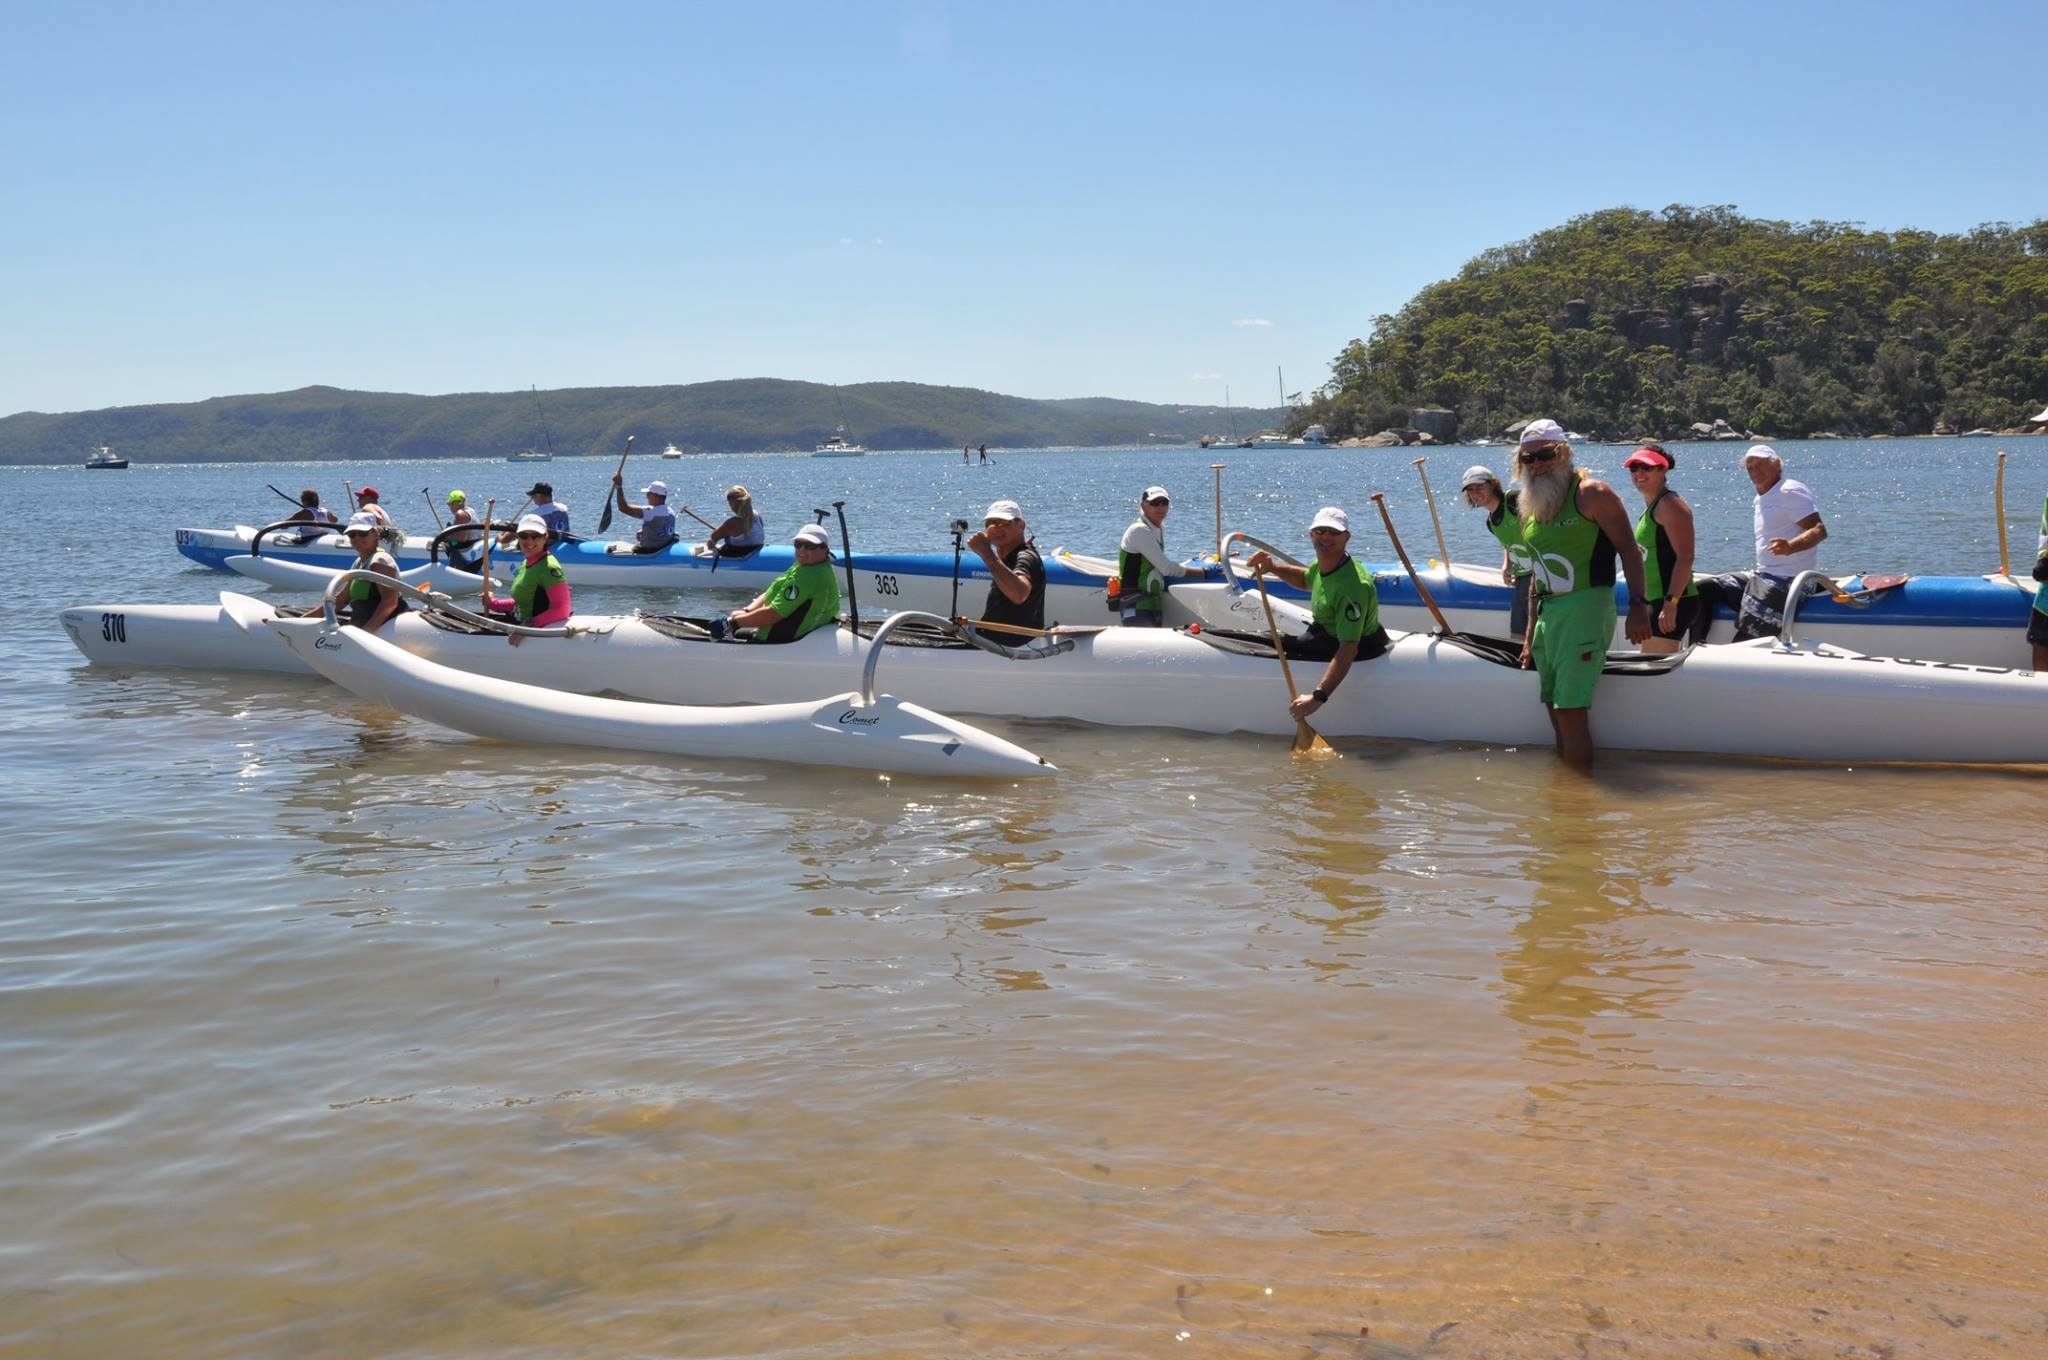 PITTWATER REGATTA SUNDAY 16TH FEBRUARY 2020 - Outrigger Canoe Club - Newcastle Outrigger Canoe Club